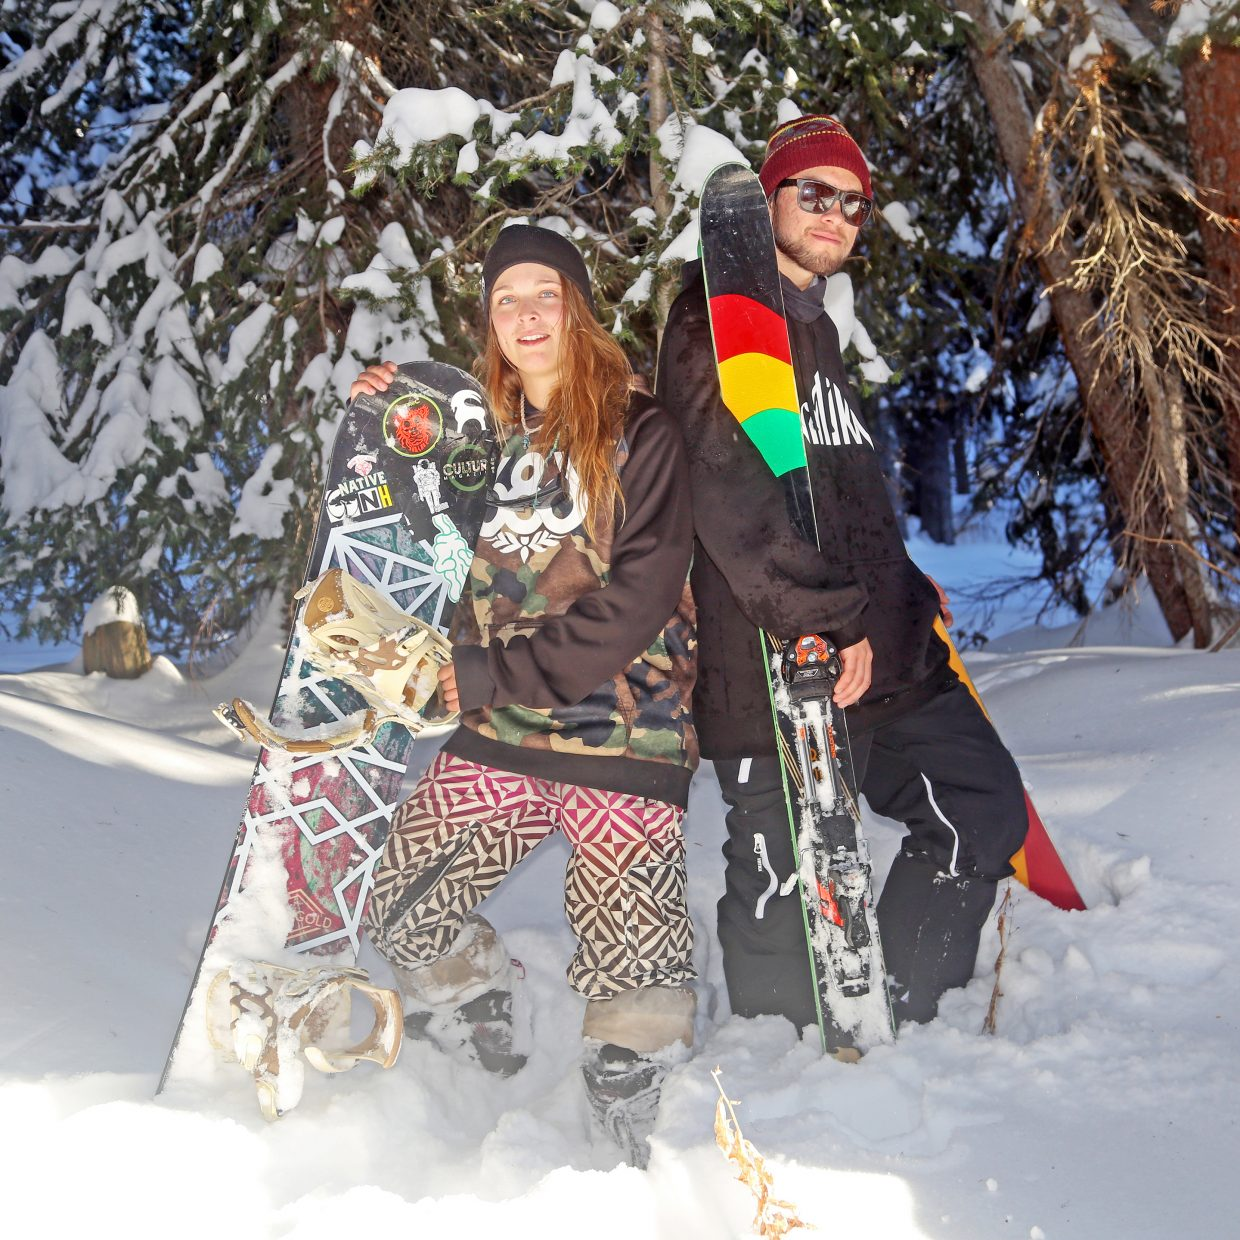 Steamboat Springs residents Kristina Edwards, left, an avid snowboarder, and skier Brian Erhart have different approaches when it comes to getting down the mountain. But it's their passion for the snow that is bringing the two sports together.